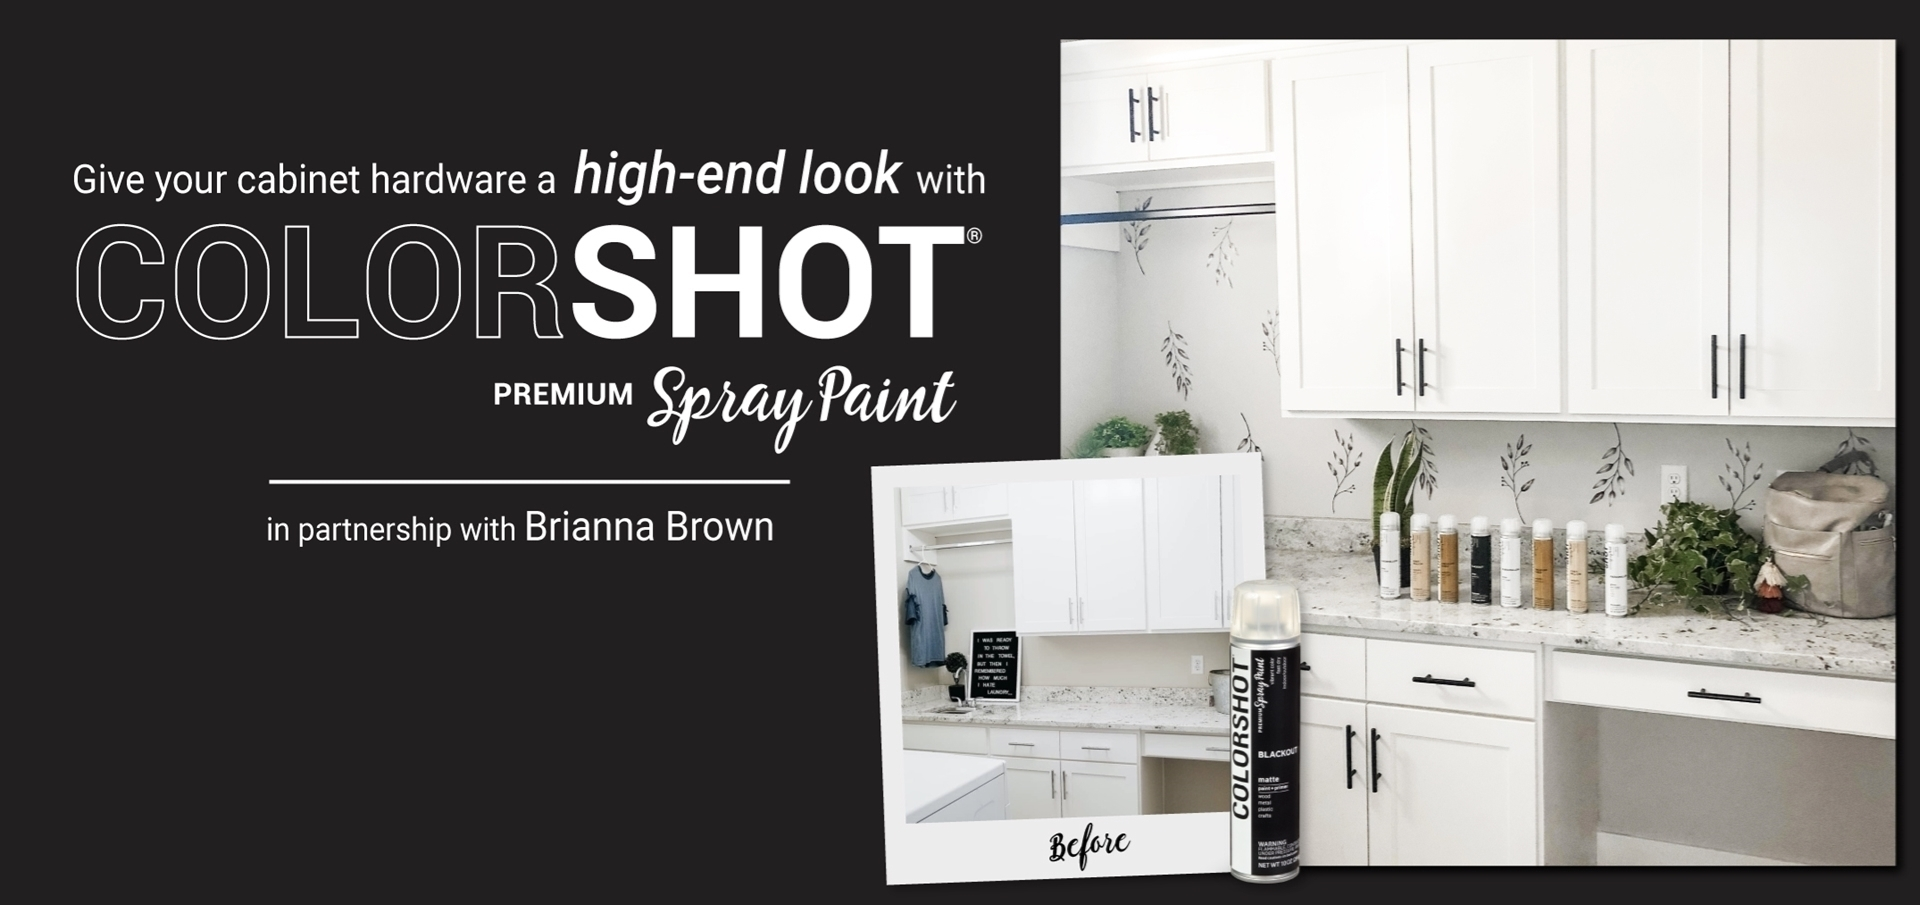 Spray Paint Cabinet Hardware for a High-End Look